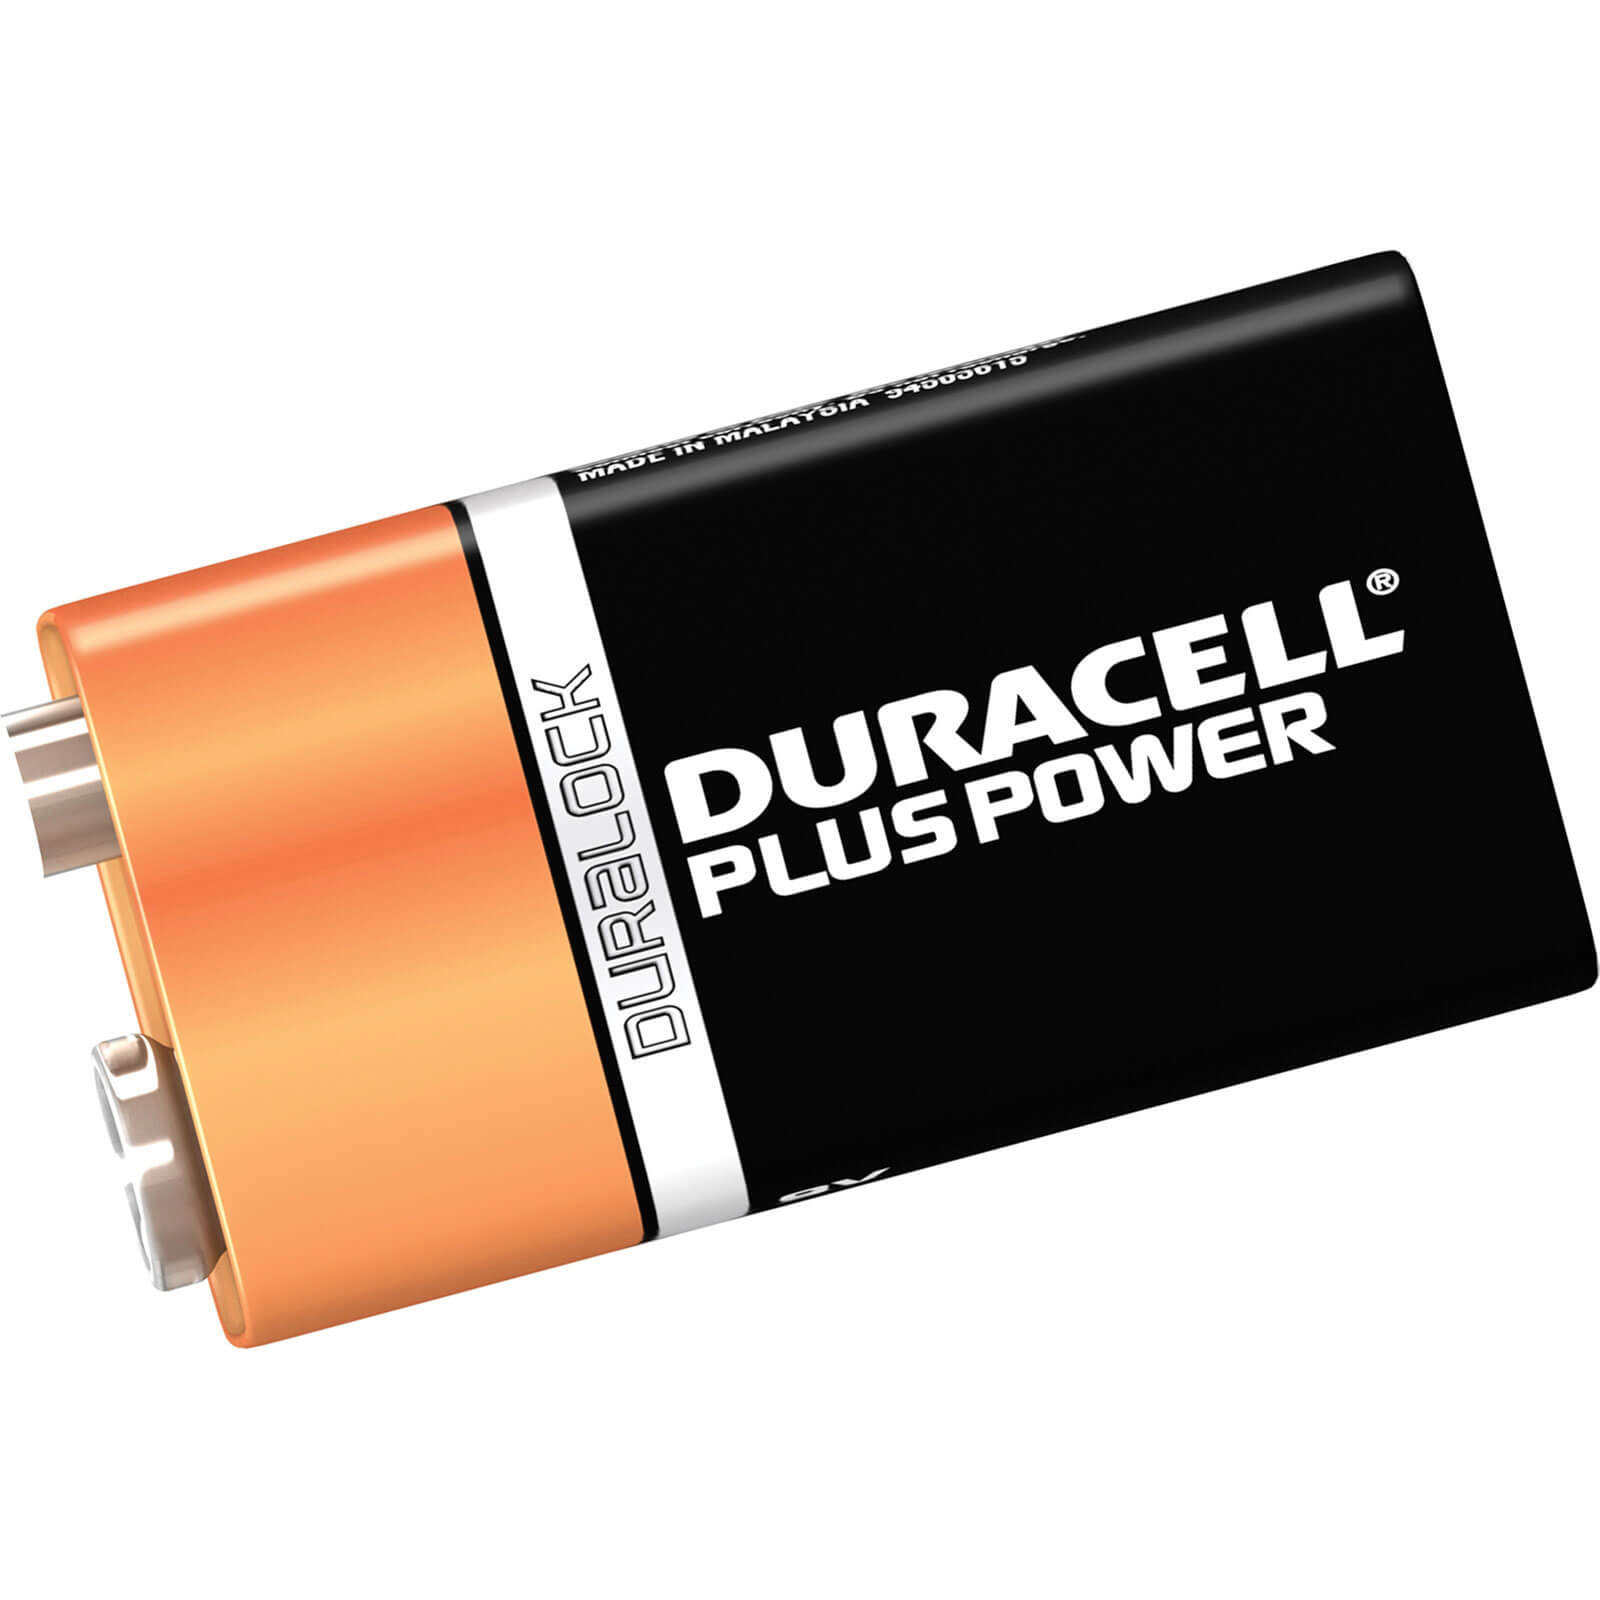 Image of Duracell 9v Plus Power Battery Pack of 2